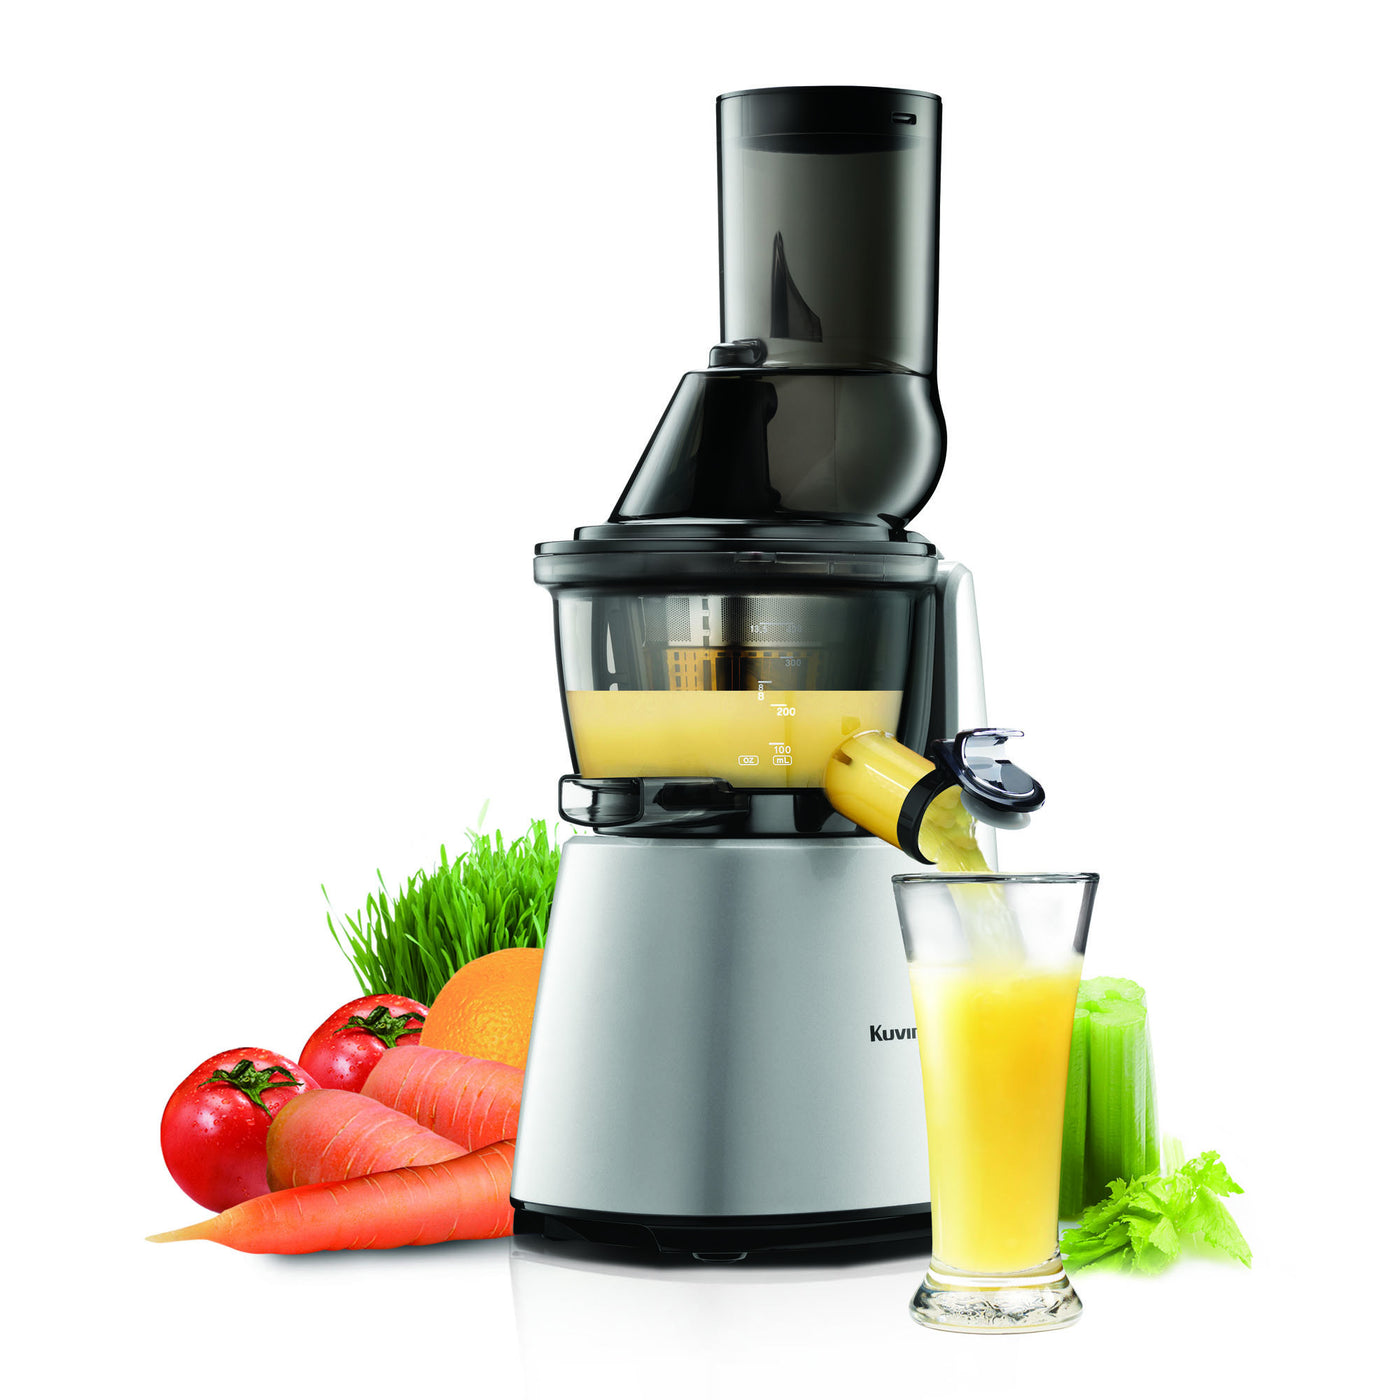 Kuvings Whole Slow Juicer Red : Kuvings Elite Whole Slow Juicer C7000 Juicerville